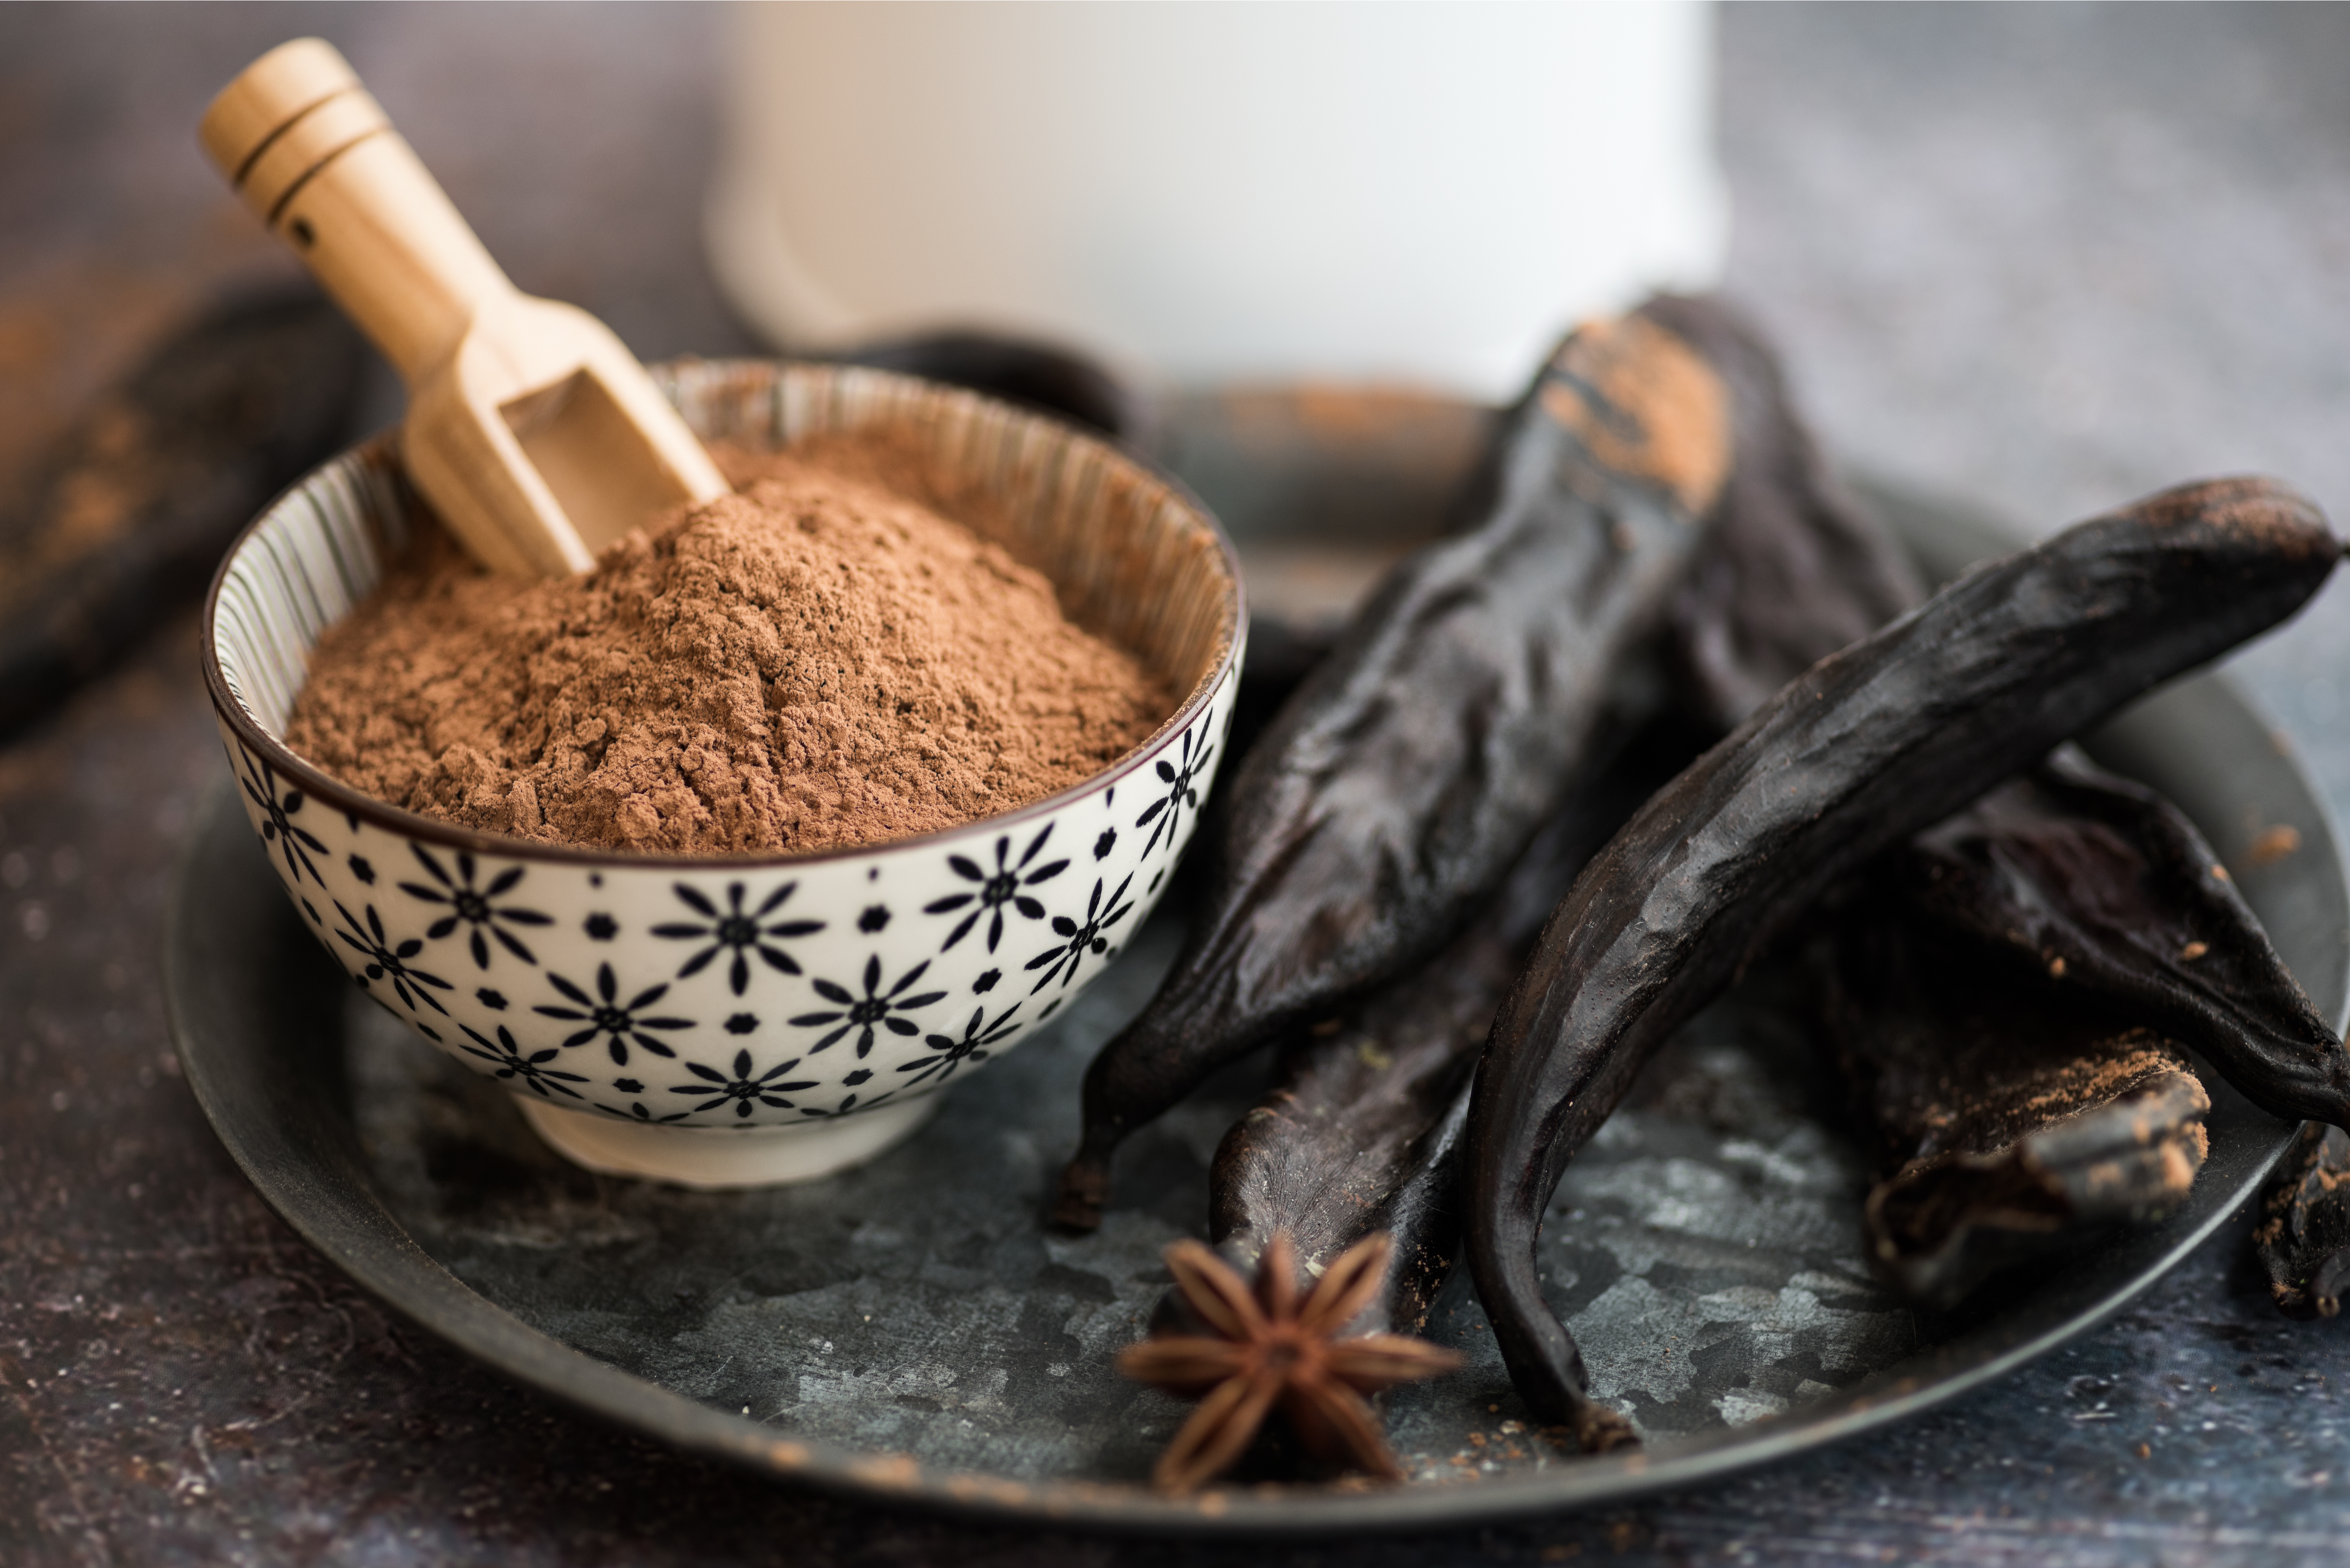 Add natural carob to your menu's recipes and enjoy nature's sweetness.